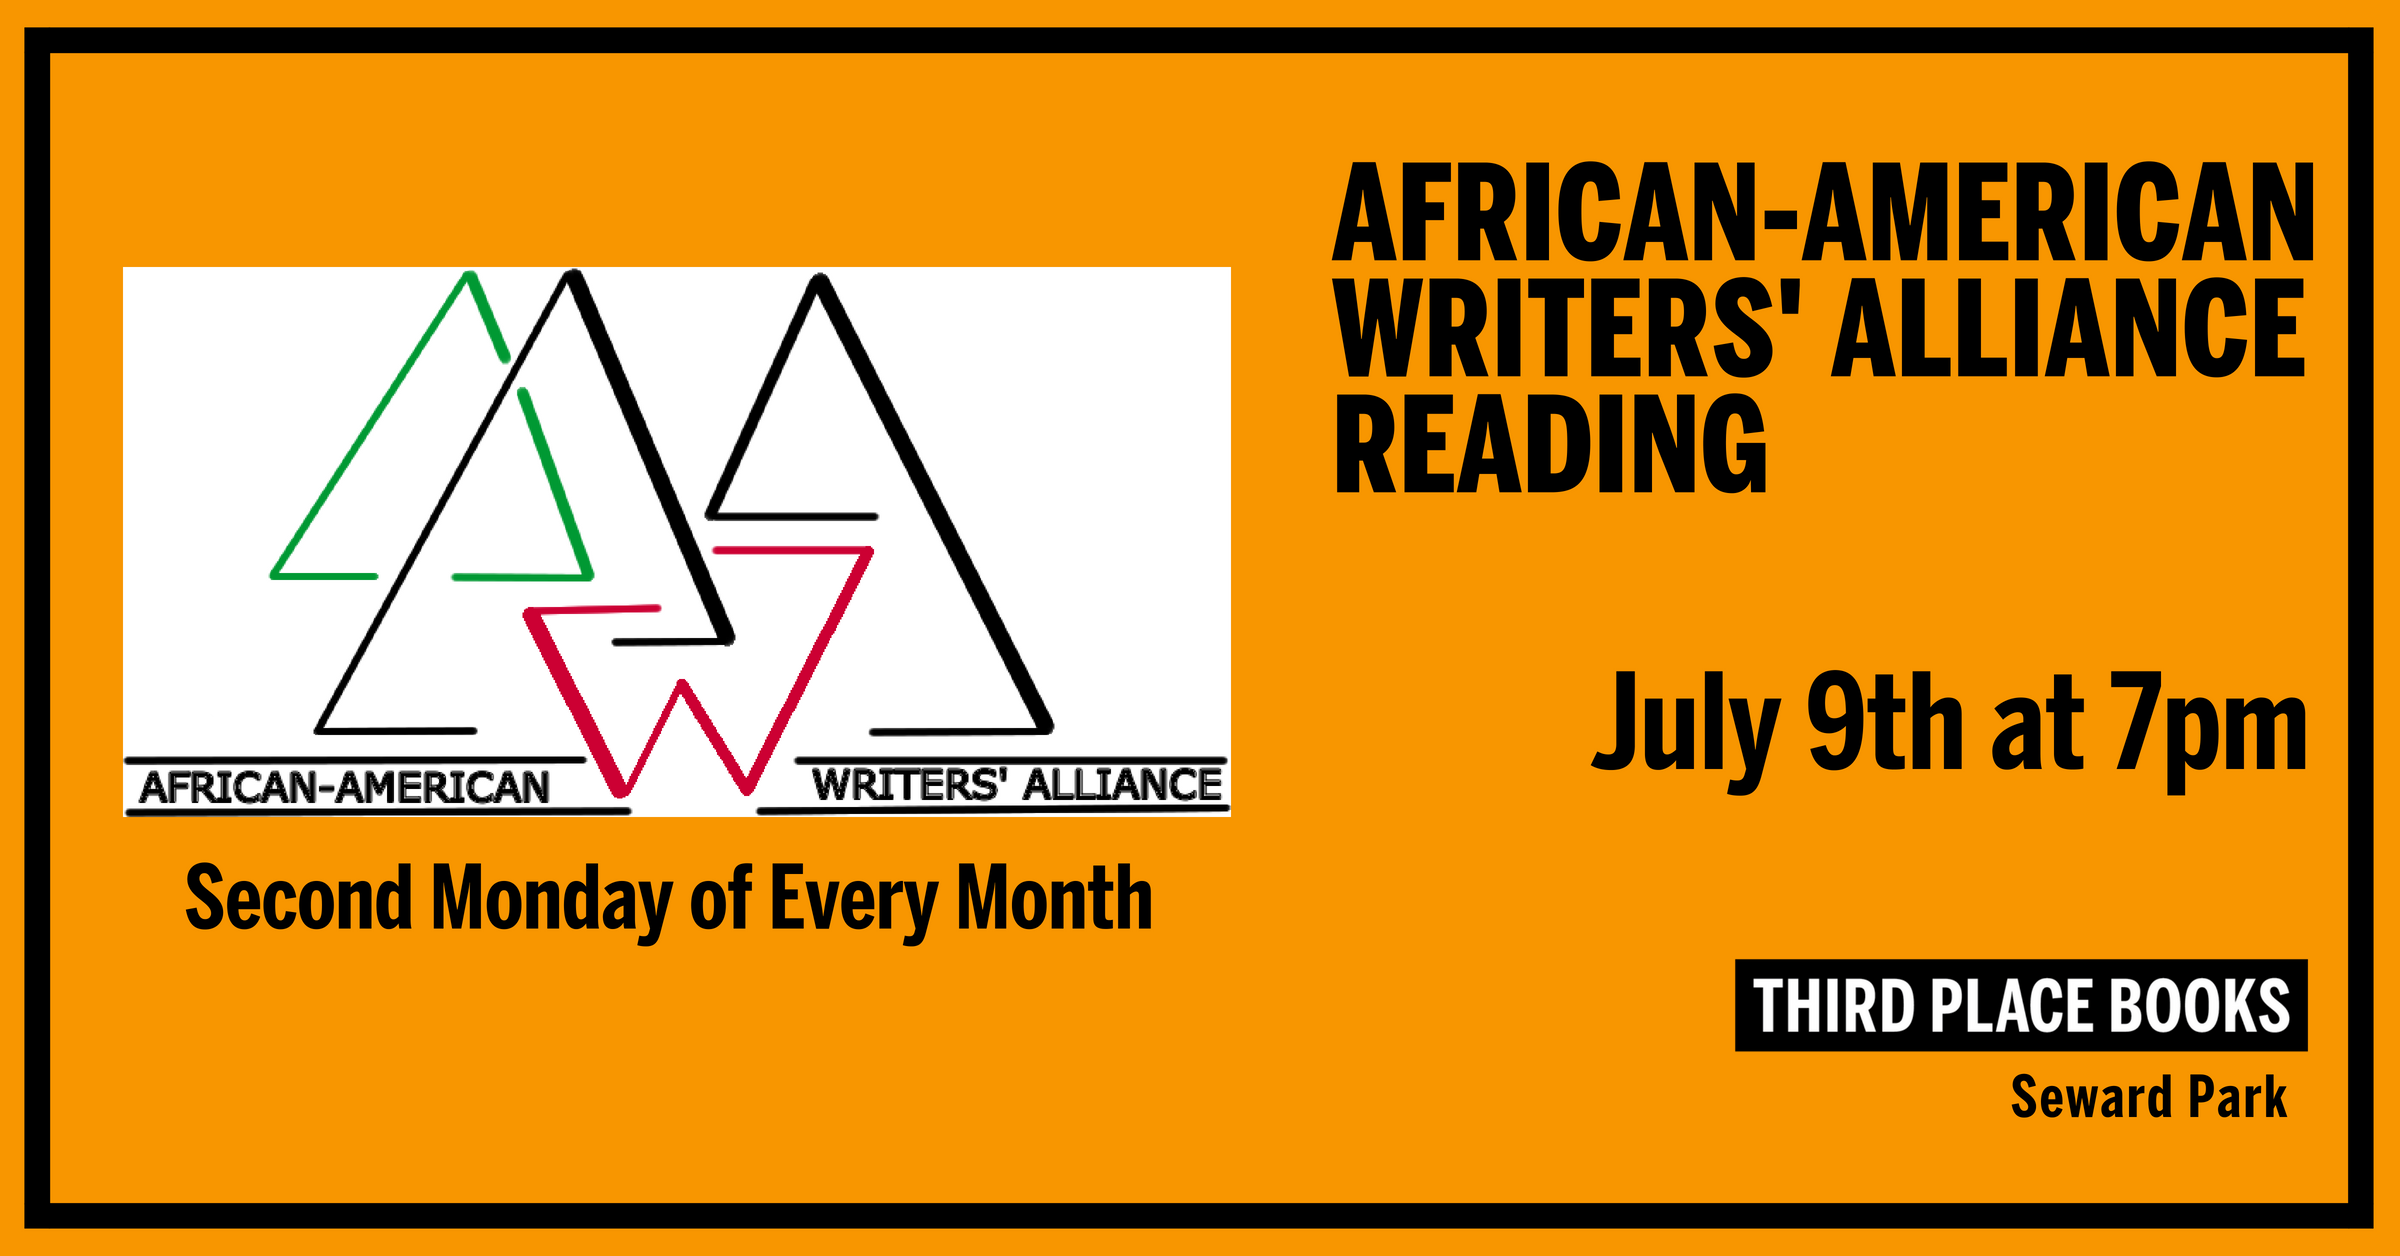 African-American Writers' Alliance Reading on July 9th at 7pm